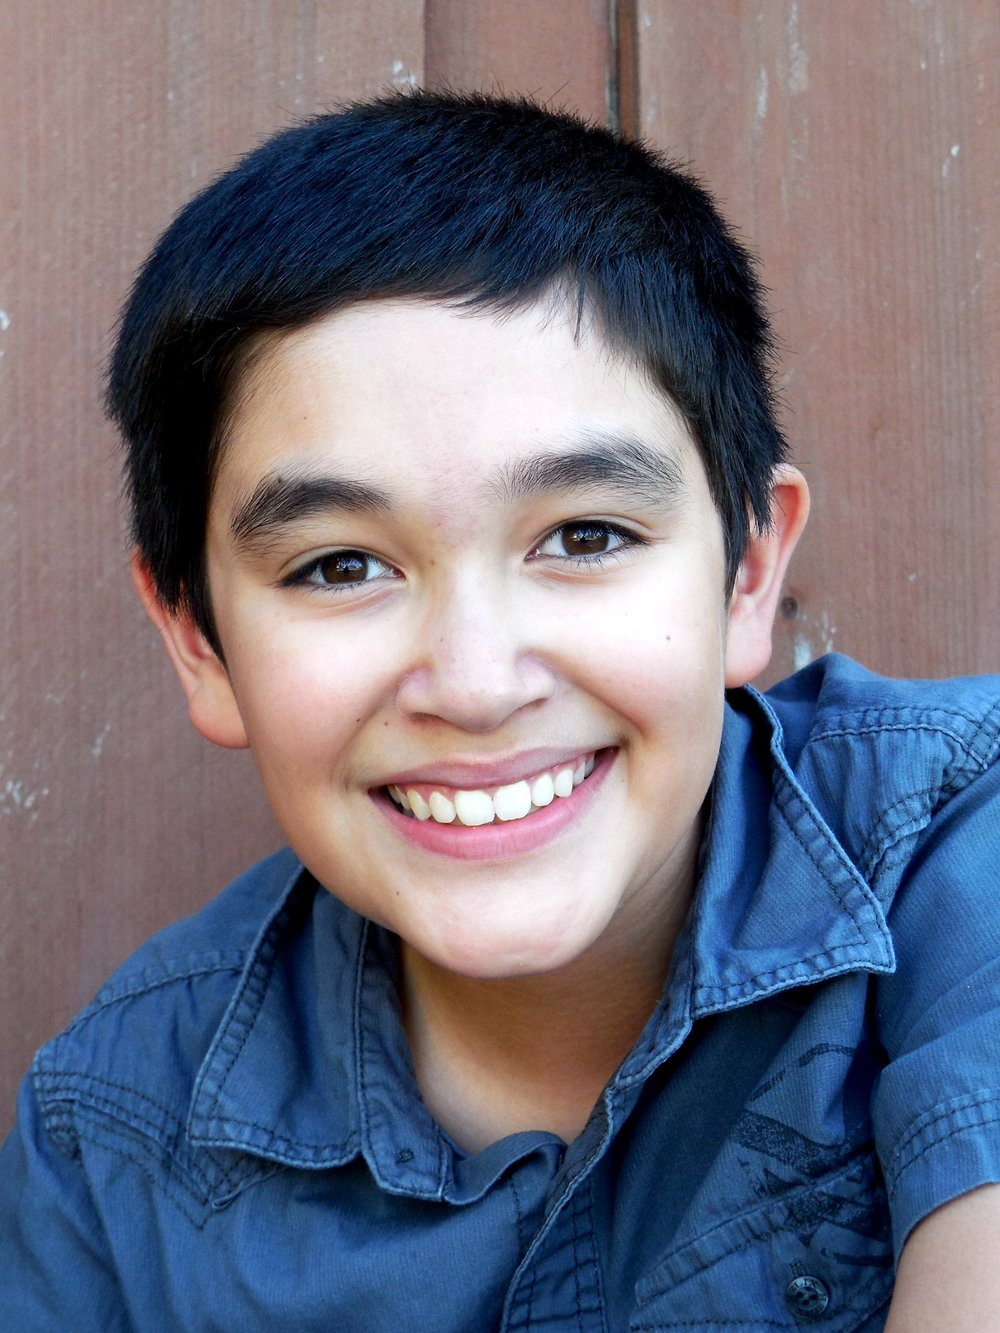 J.D. Cerruti is a 12 year old 7th grader from Livermore who is thrilled to be playing the lead role of Eubie as part of Stone House Theater Company's production of The Happy Elf! J.D. has been performing in various theater companies in the East Bay since 2013, and enjoys developing characters and telling stories on stage. He has studied music and voice since the age of 6 and has performed the National Anthem at multiple venues across the Bay Area. In his spare time J.D. also enjoys baseball, video games, Legos, Disneyland, and being awesome! He can't wait for people to come out to San Ramon and see this great cast and production team put on a fantastic show!!